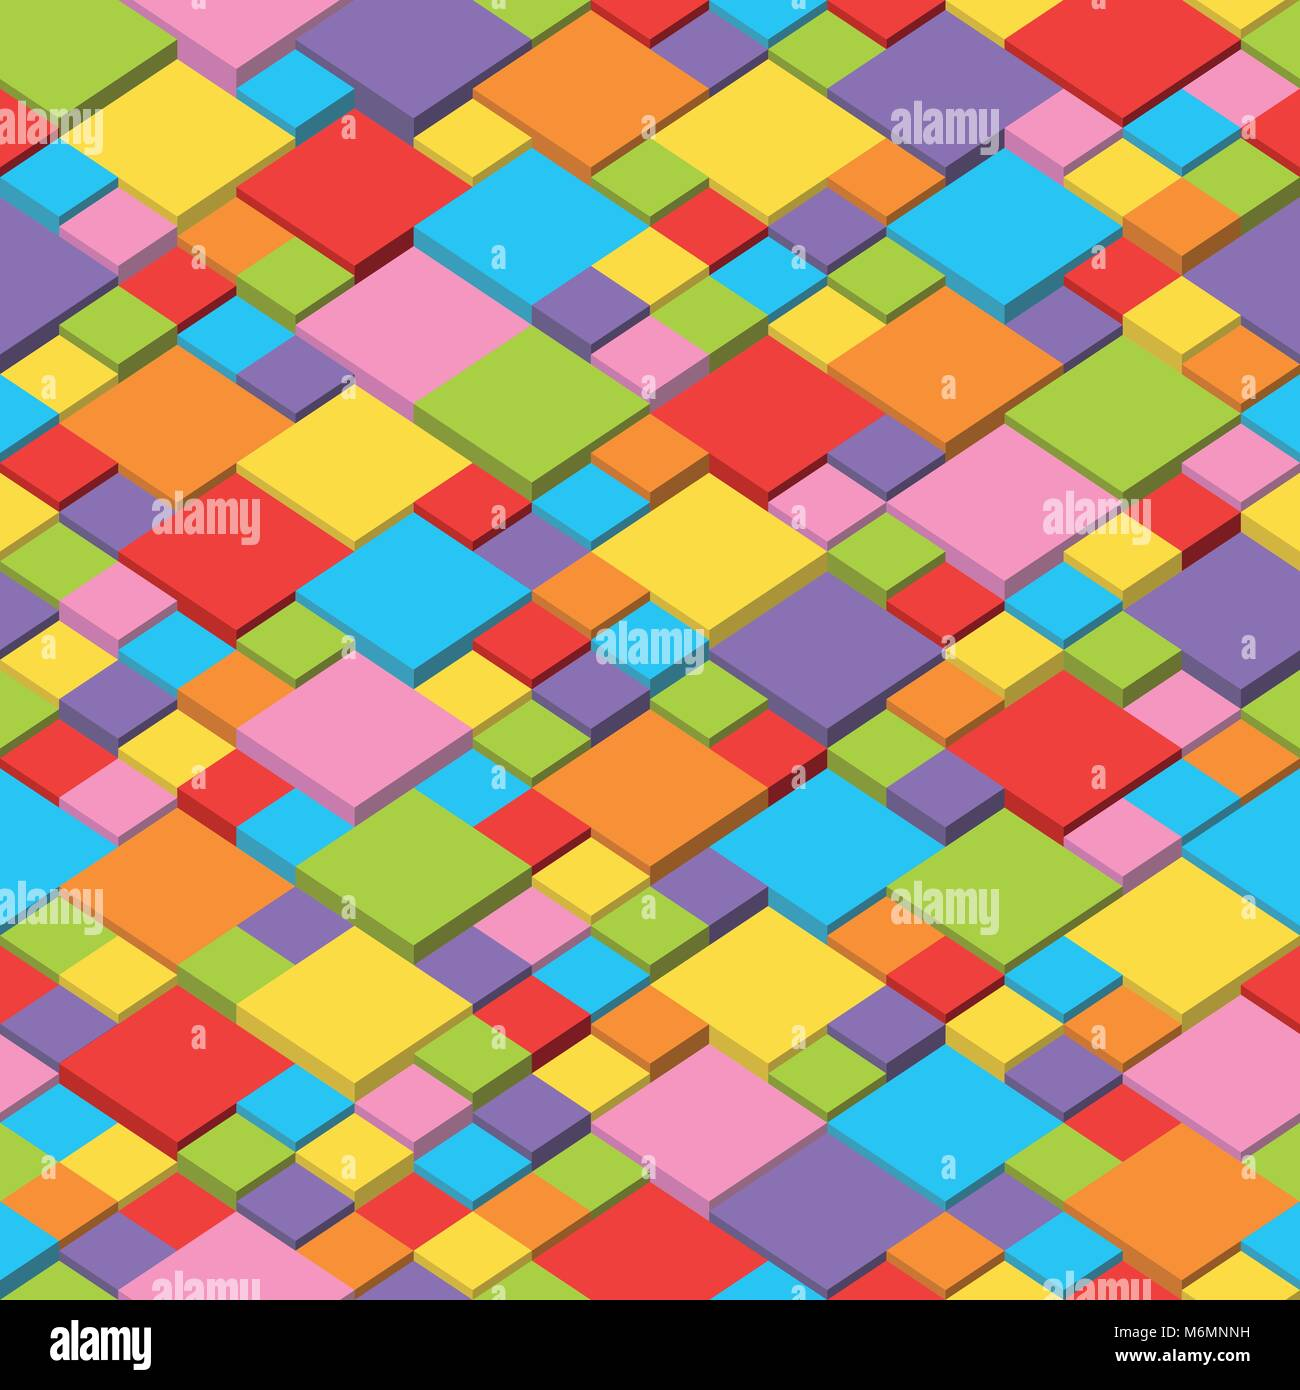 Abstract vector background of multi-colored cubes, seamless and repeatable pattern - Stock Vector